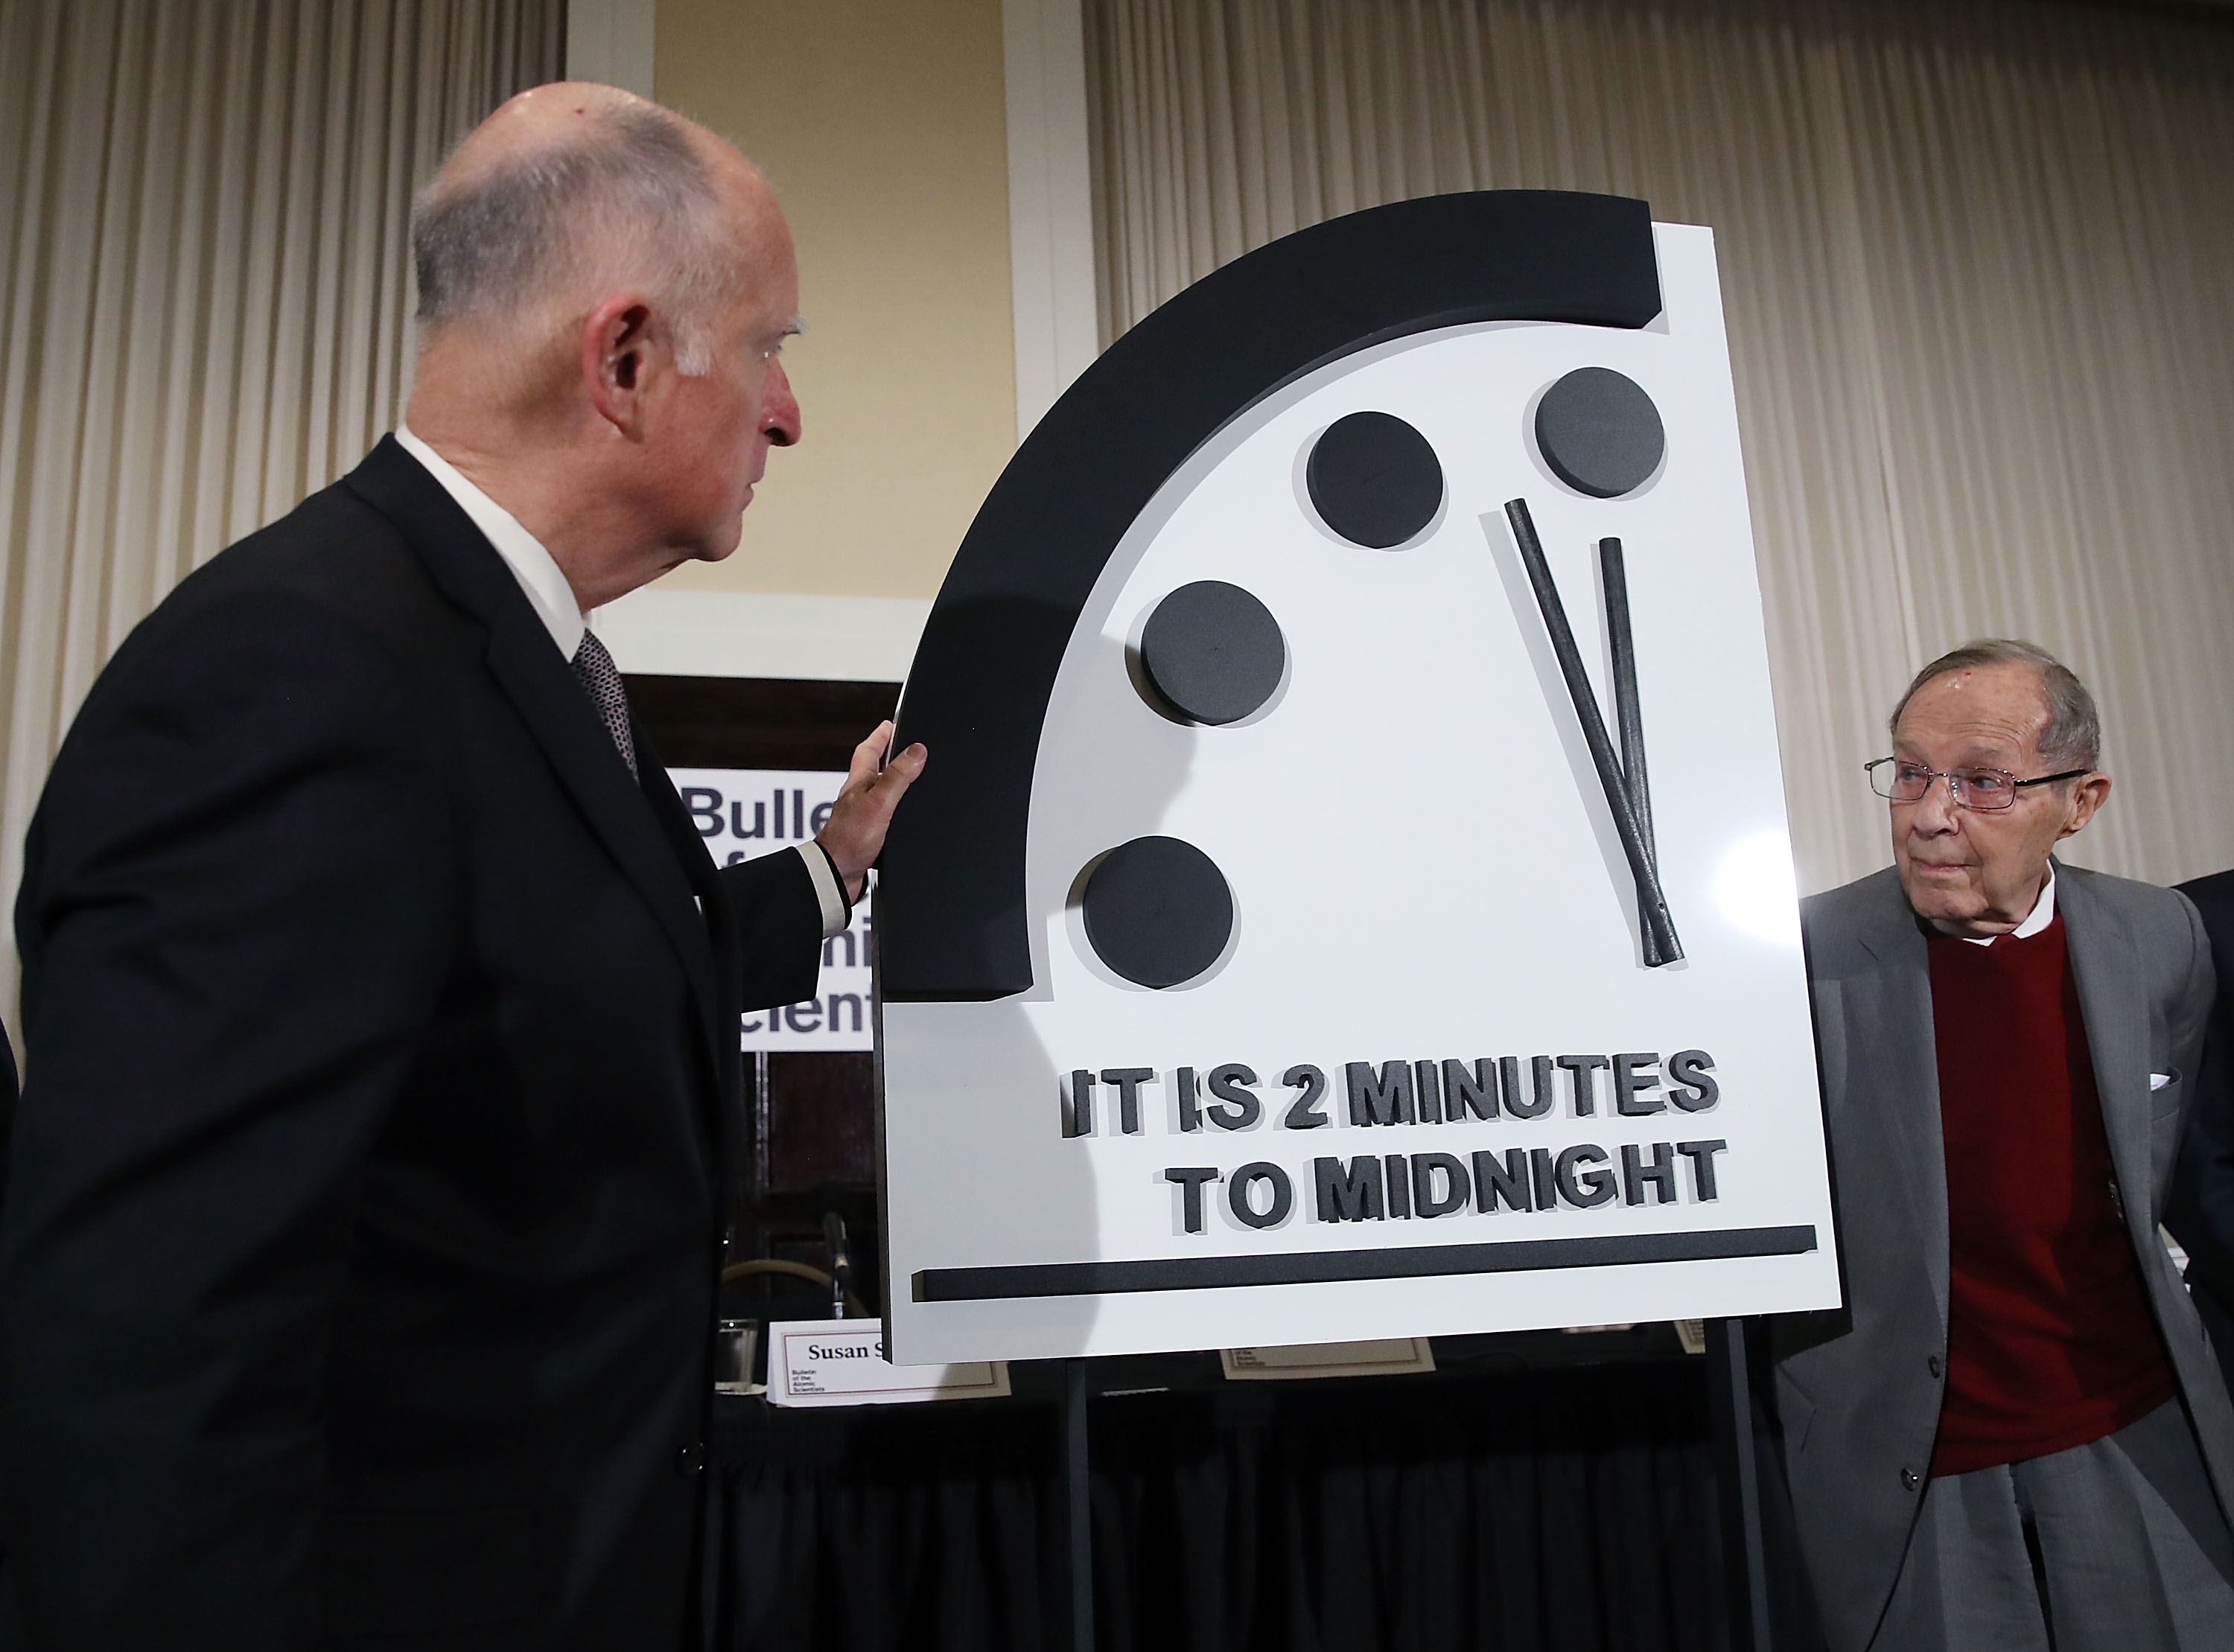 Bulletin Of The Atomic Scientists Hold Annual News Conference To Announce Adjustment To Doomsday Clock